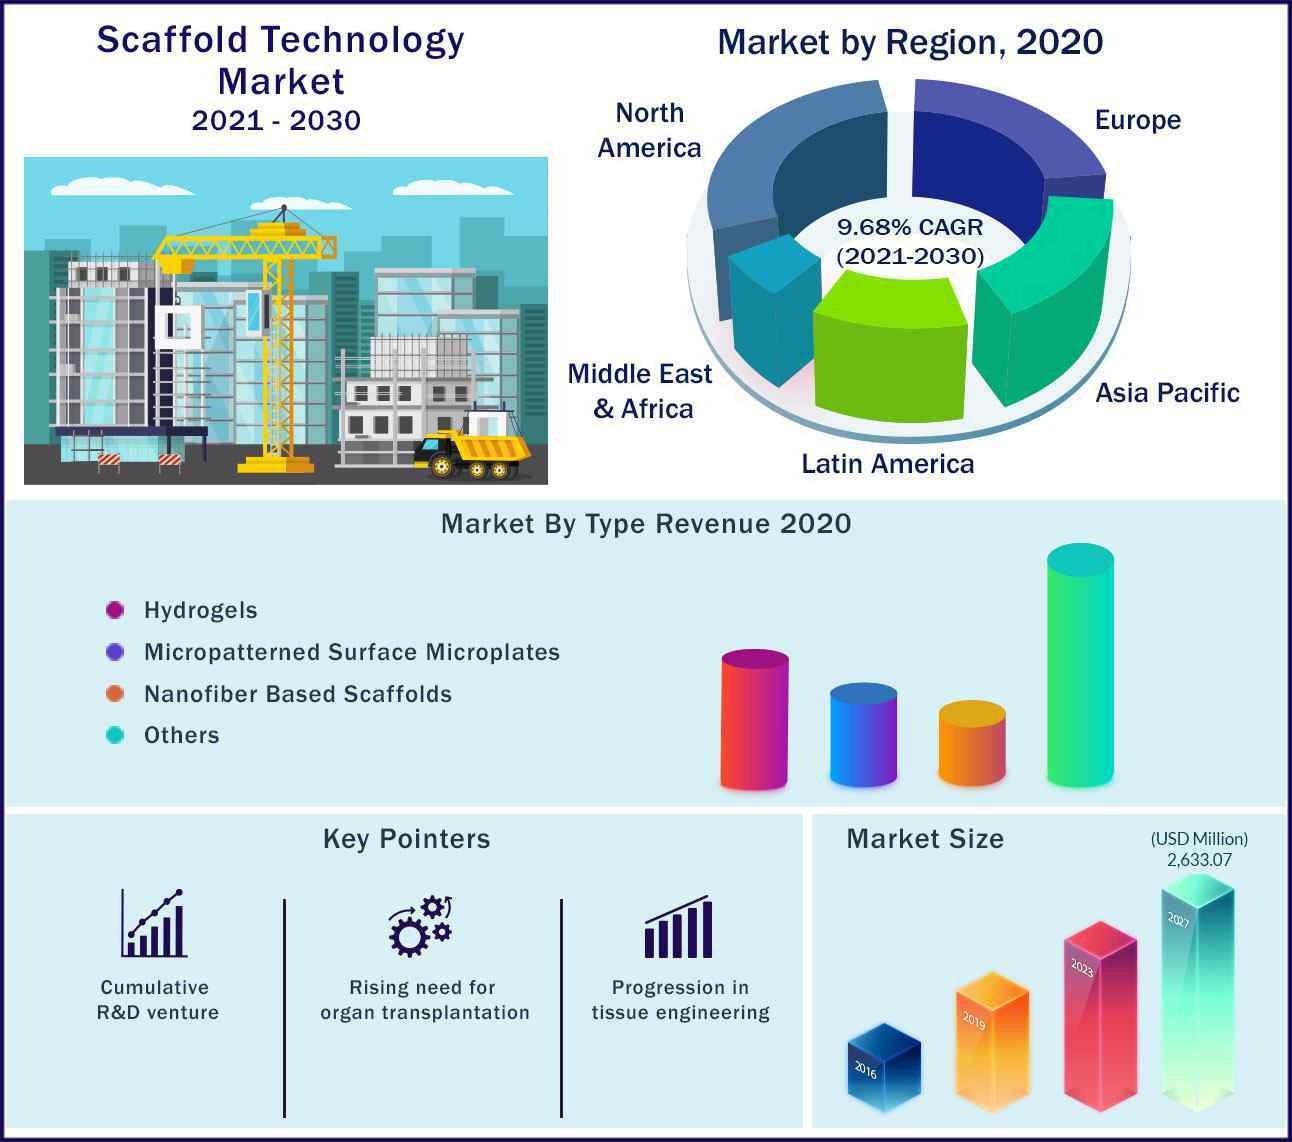 Global Scaffold Technology Market 2021 to 2030